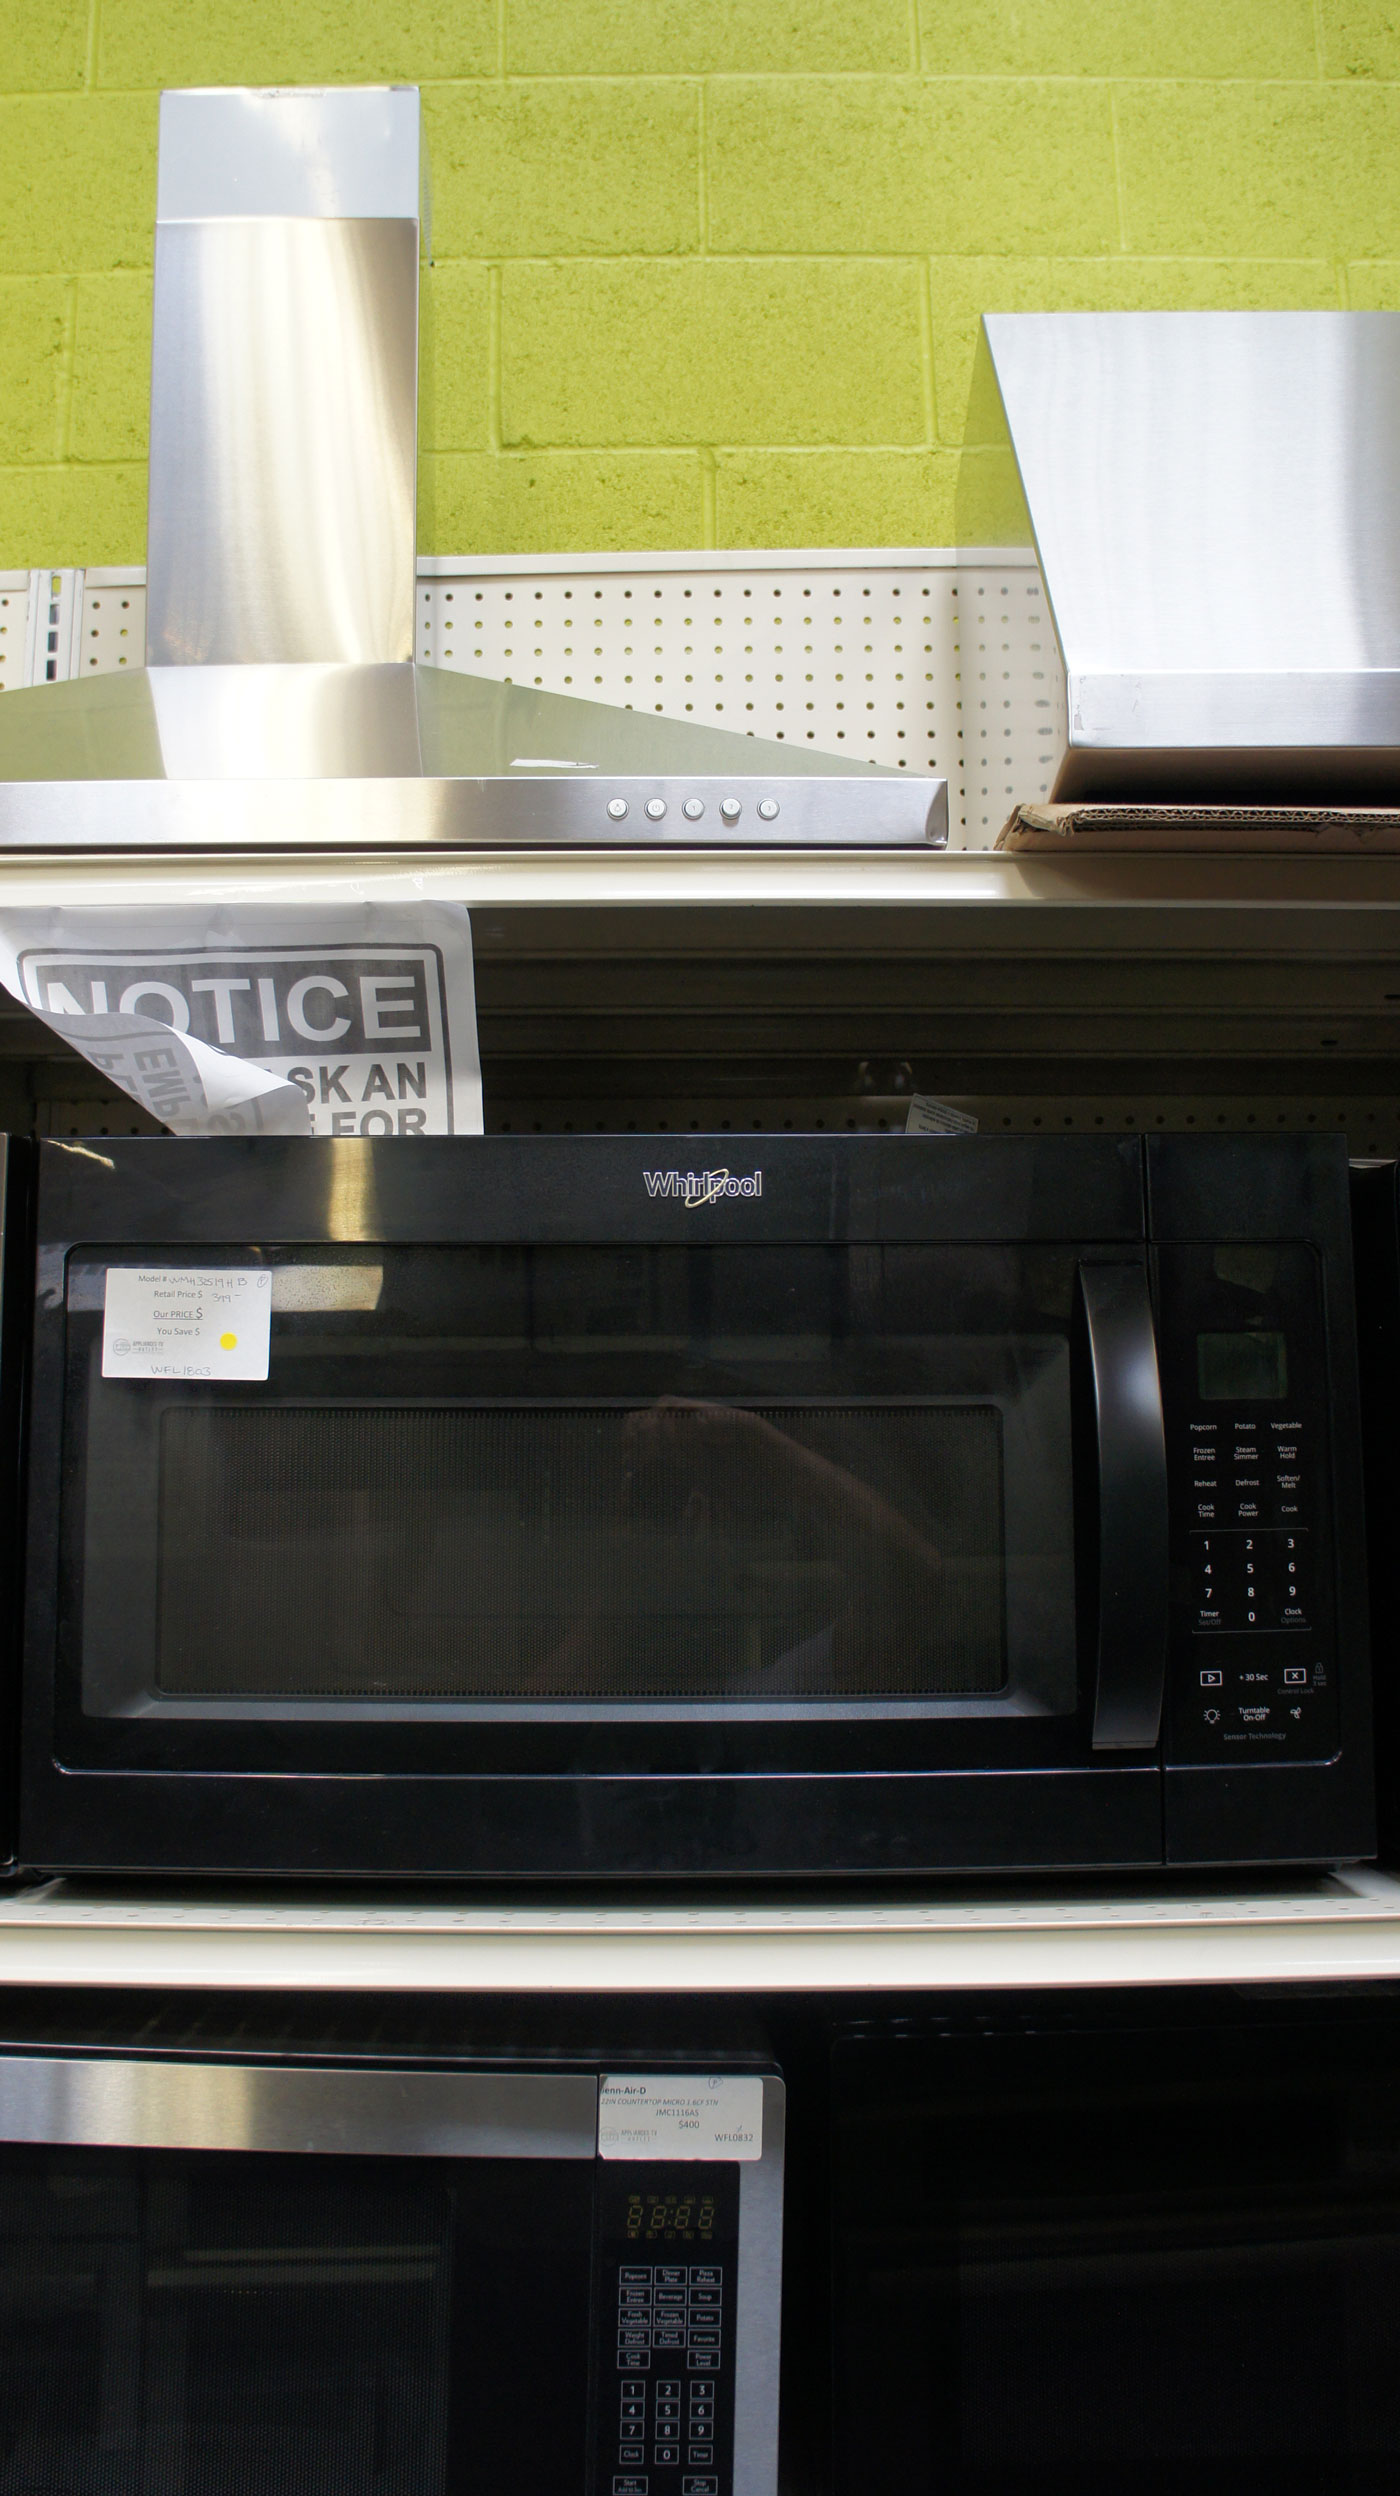 1.9 cu.ft. Whirlpool WMH32519HB Over-The-Range Microwave